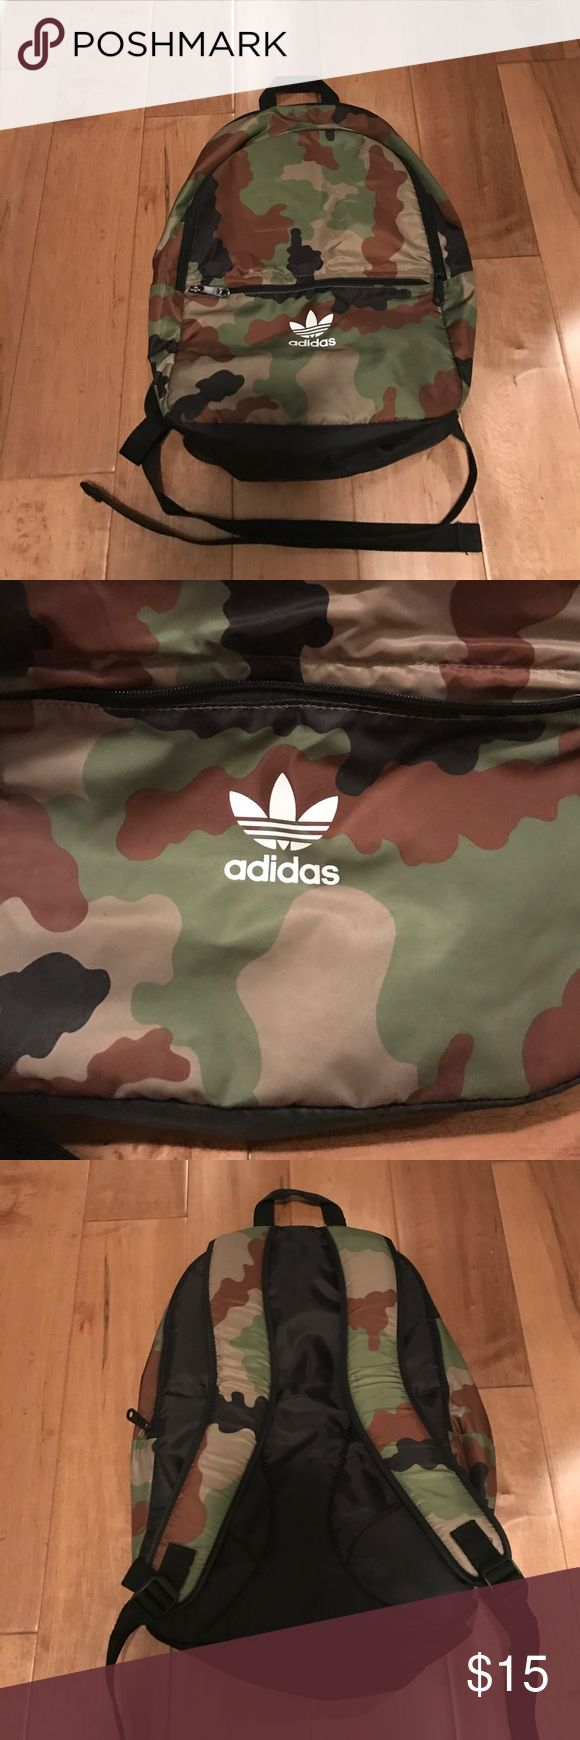 "Adidas Camo Backpack Adidas Camo backpack used a few times. Just slight signs of wear in front. 18"" long and 12"" wide. Adidas Bags Backpacks"